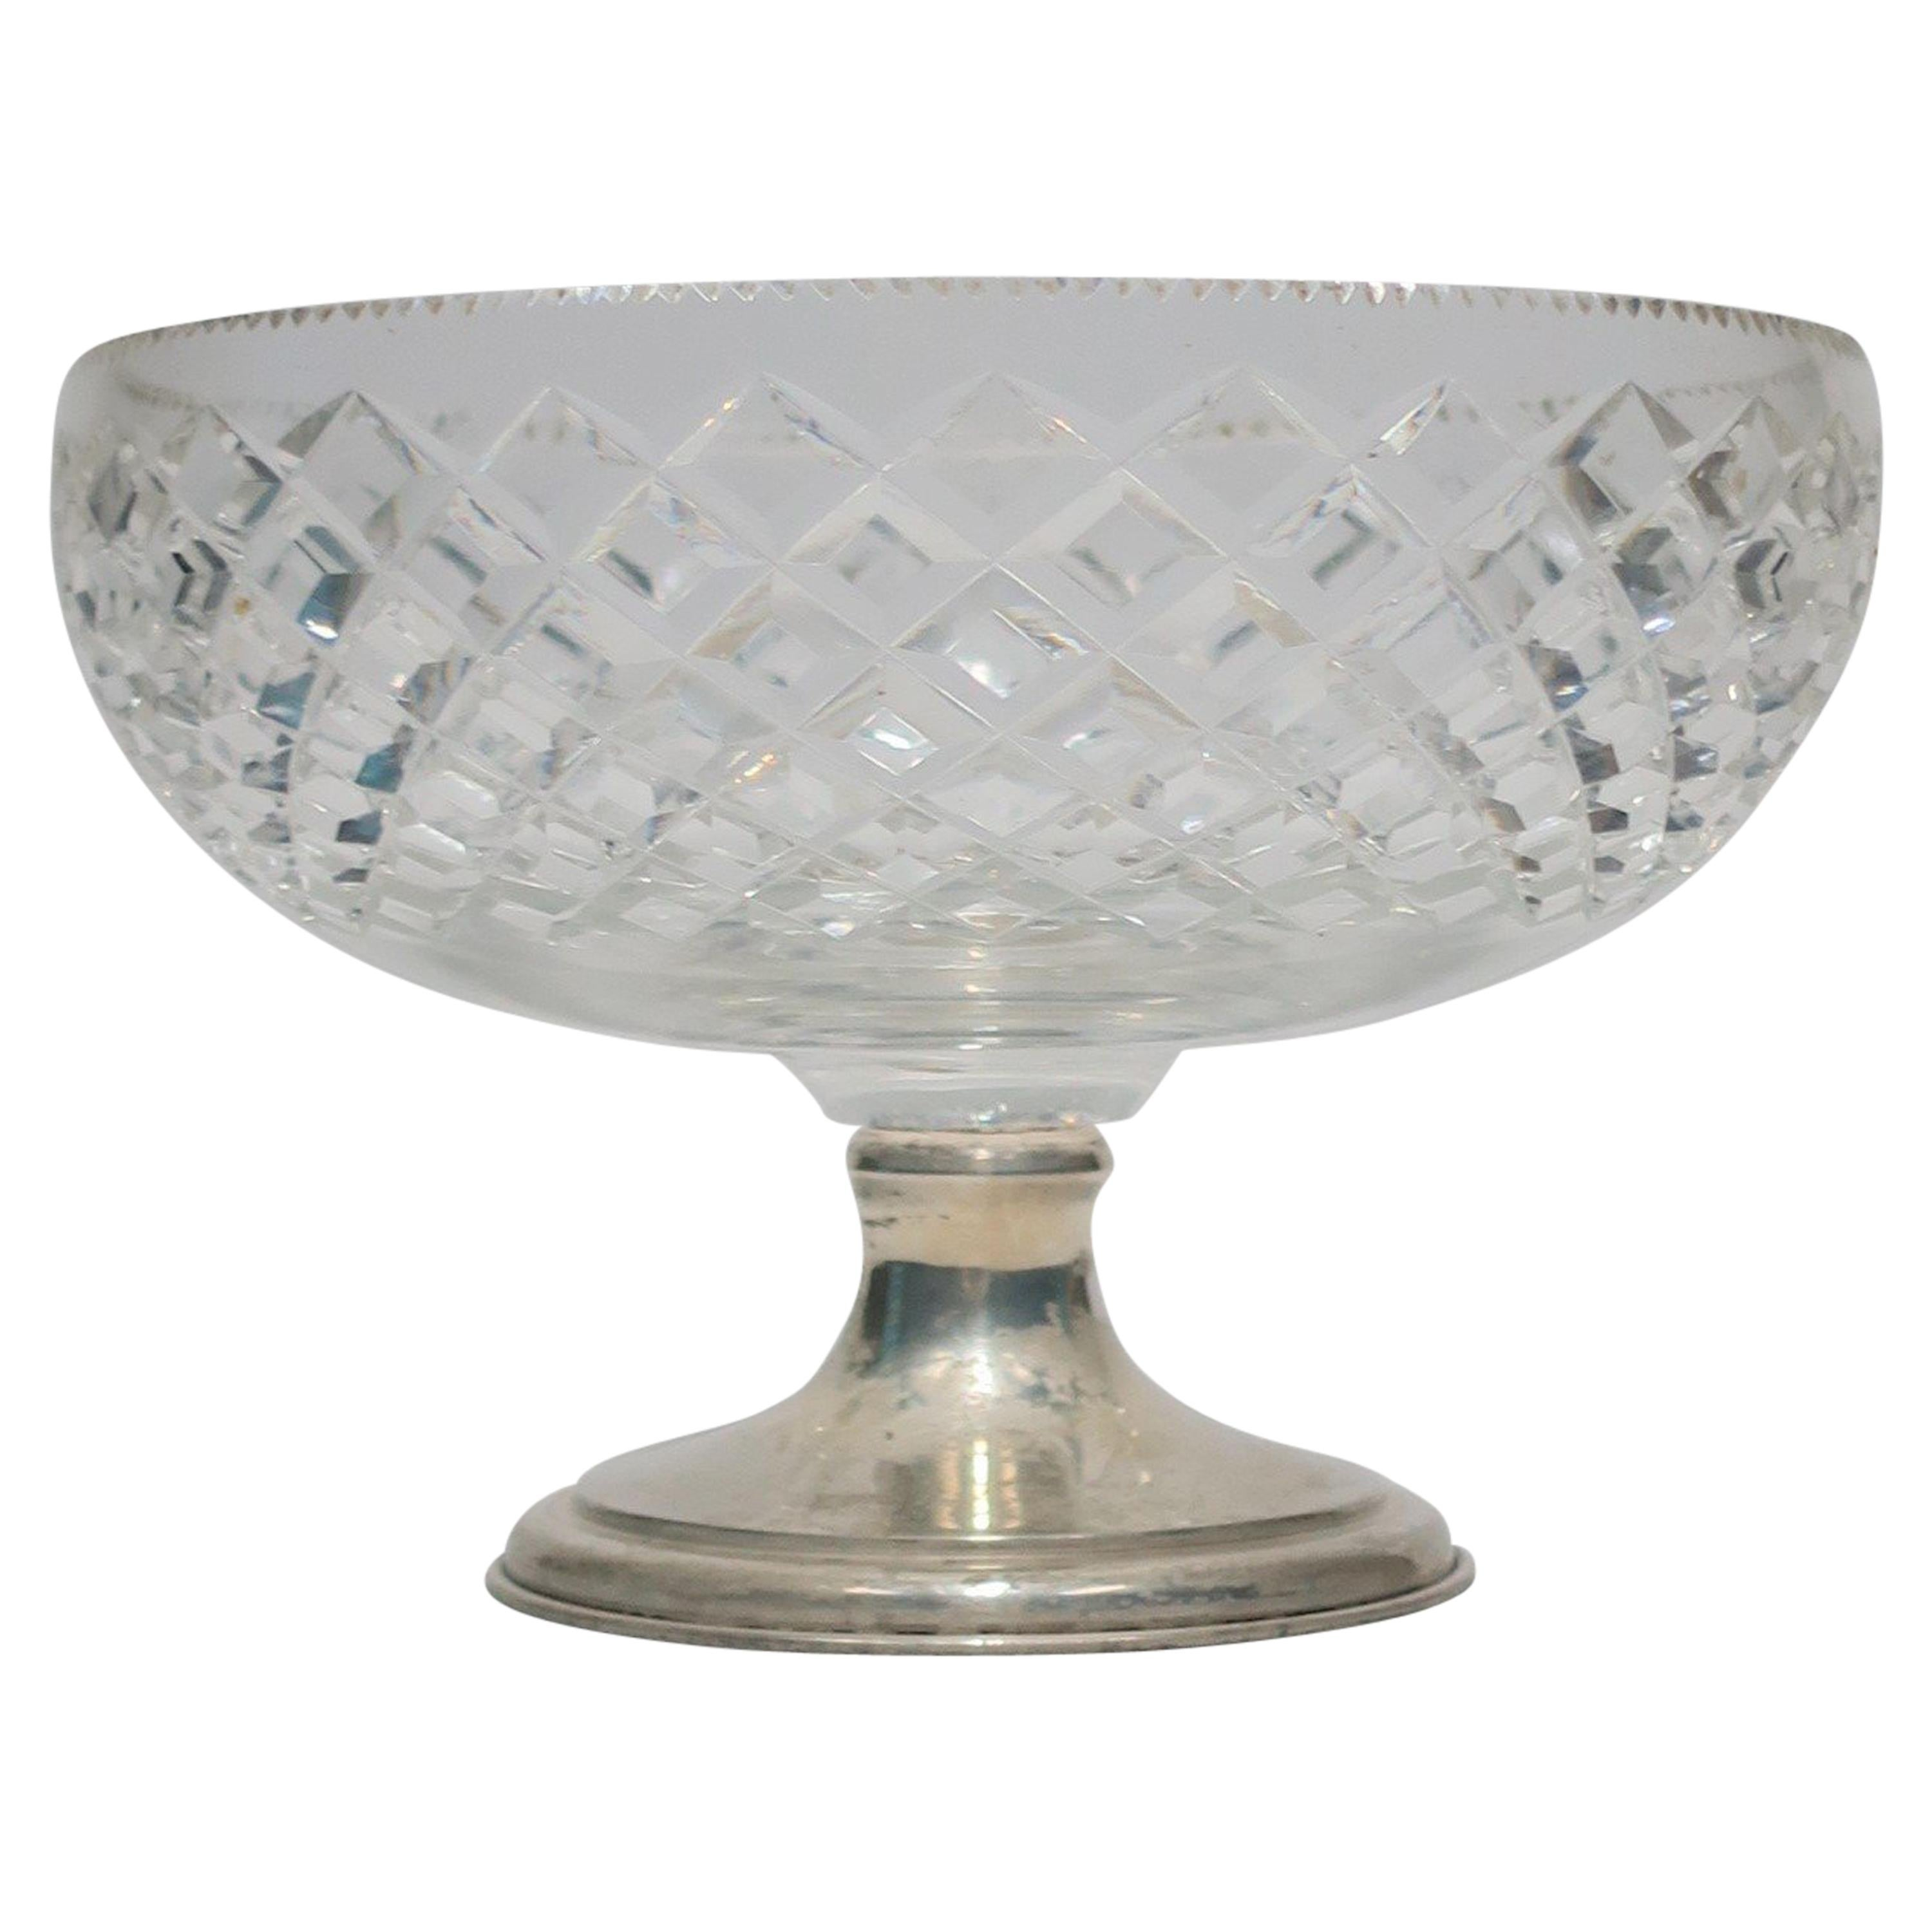 Midcentury Crystal and Sterling Silver Compote or Footed Bowl